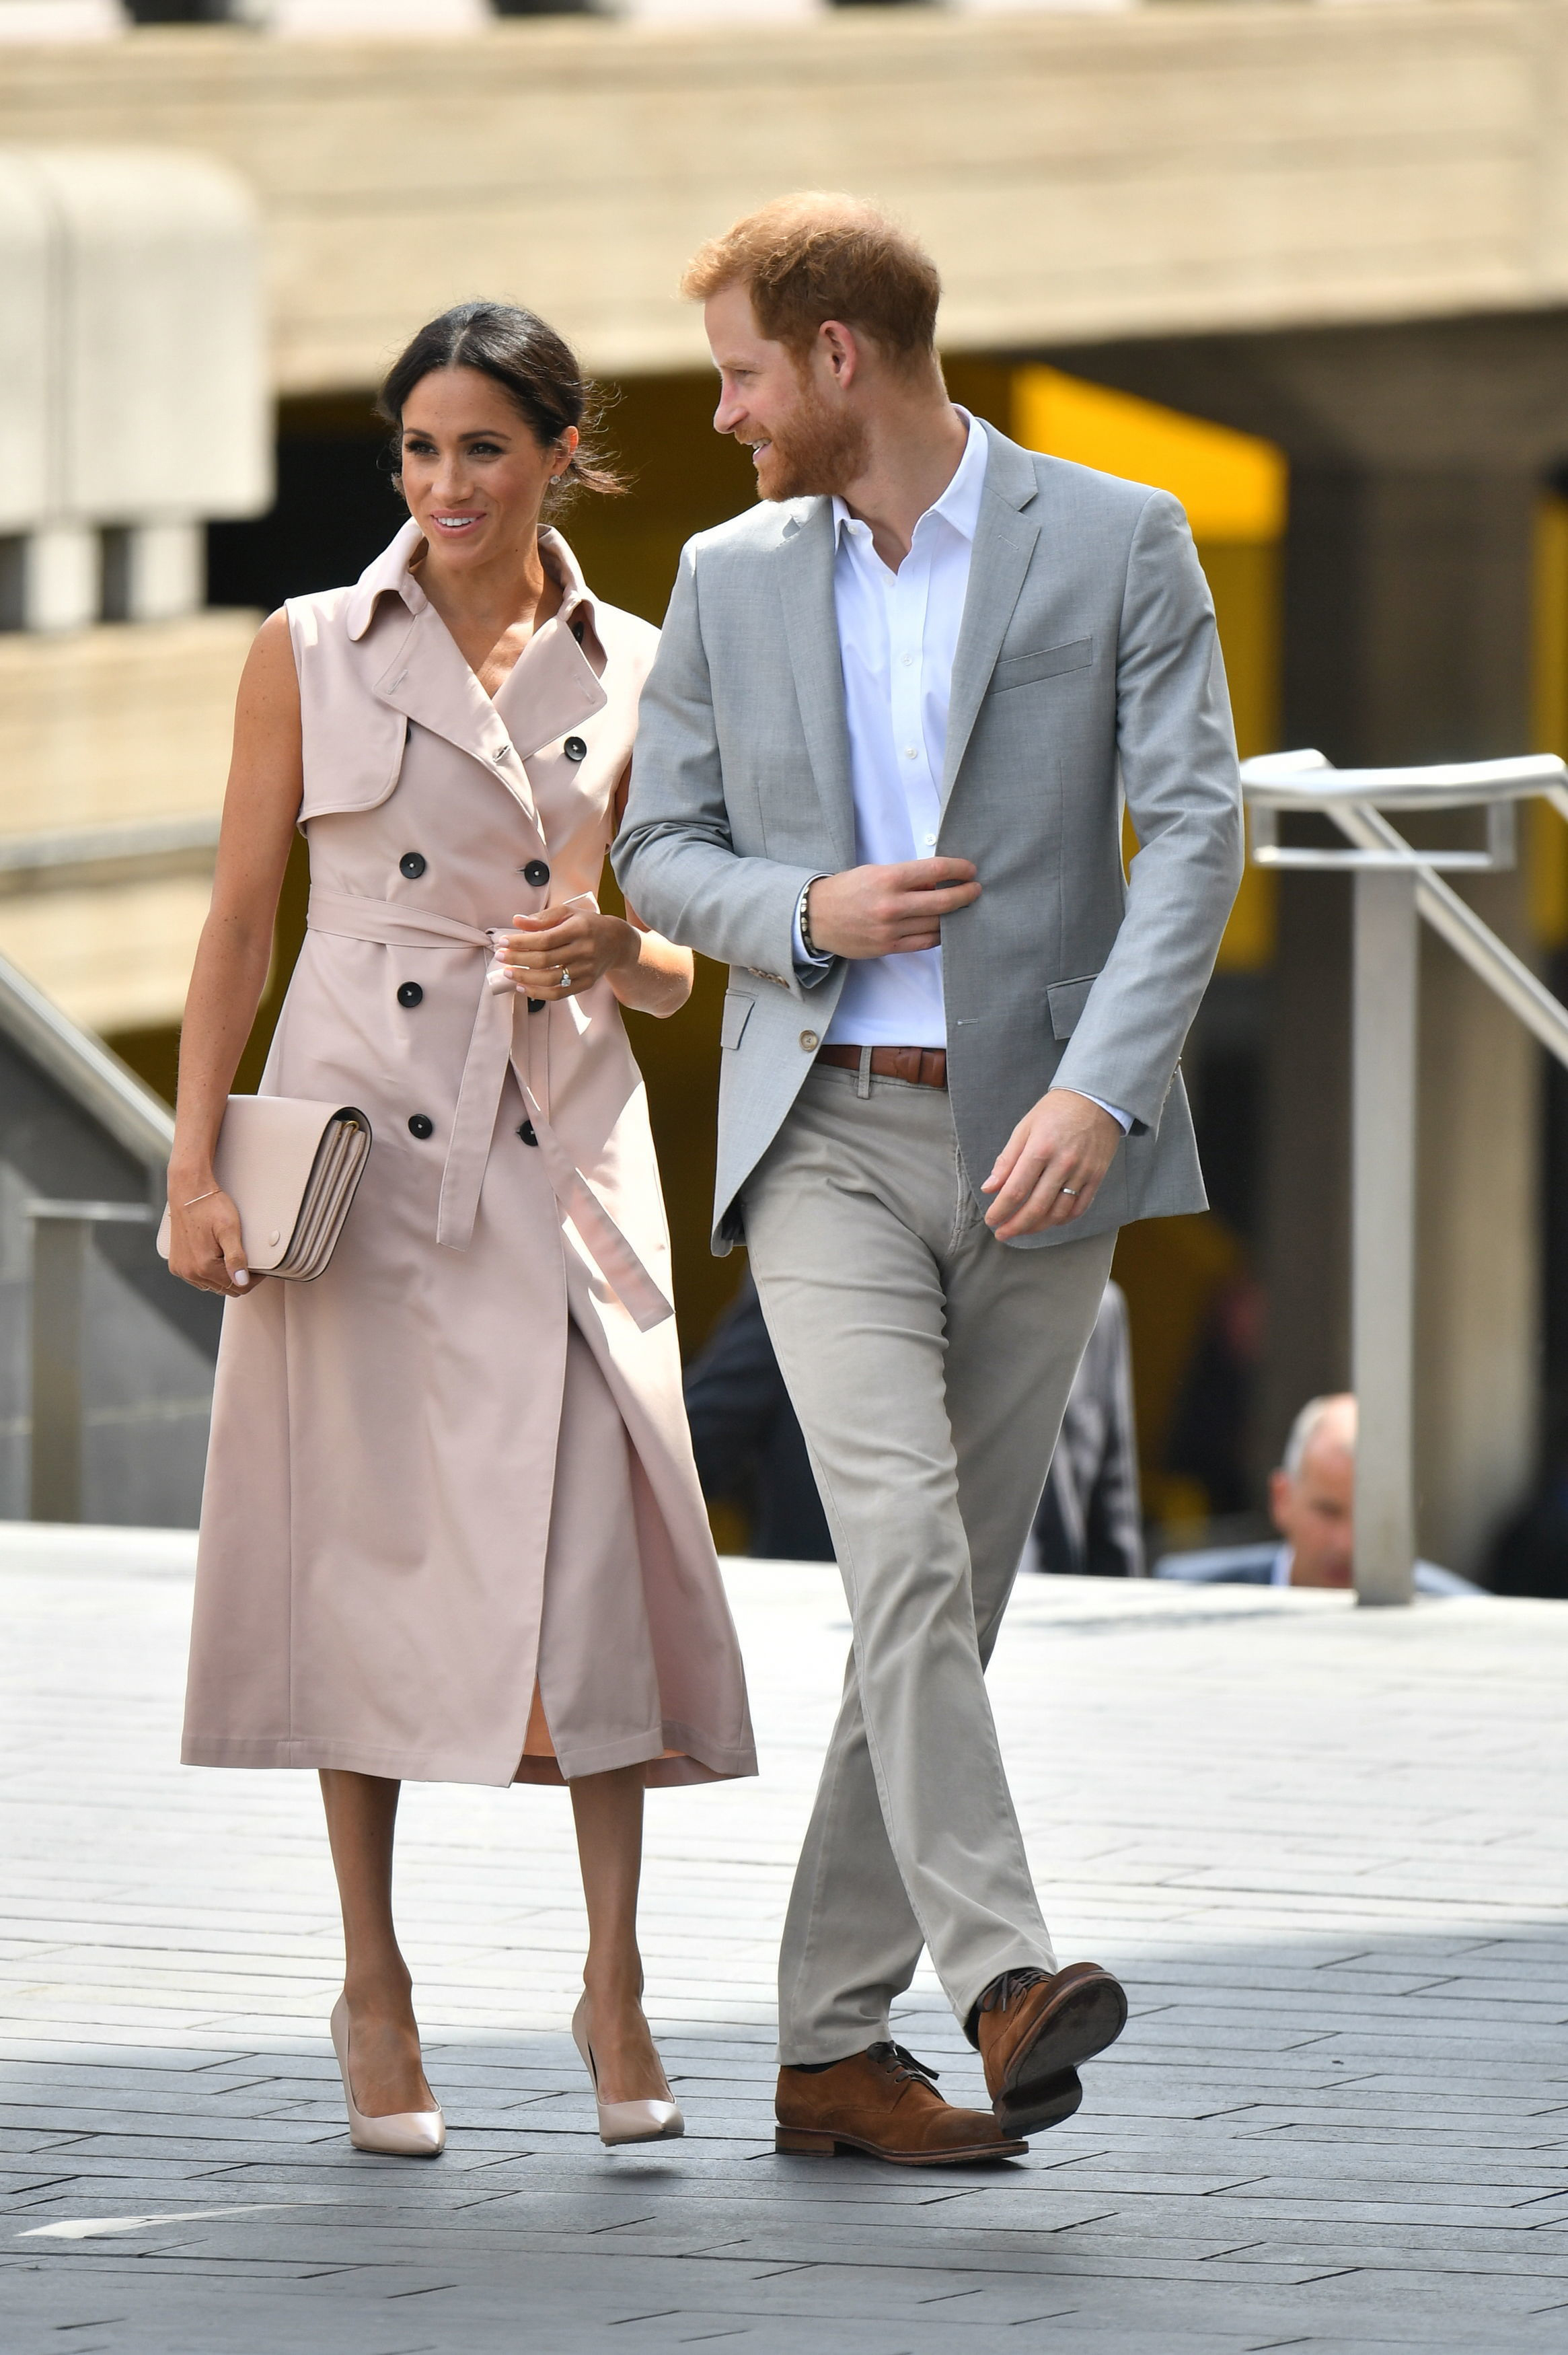 The Duke and Duchess of Sussex arrive for their visit to the Nelson Mandela centenary exhibition at the Southbank Centre's Queen Elizabeth Hall, London.